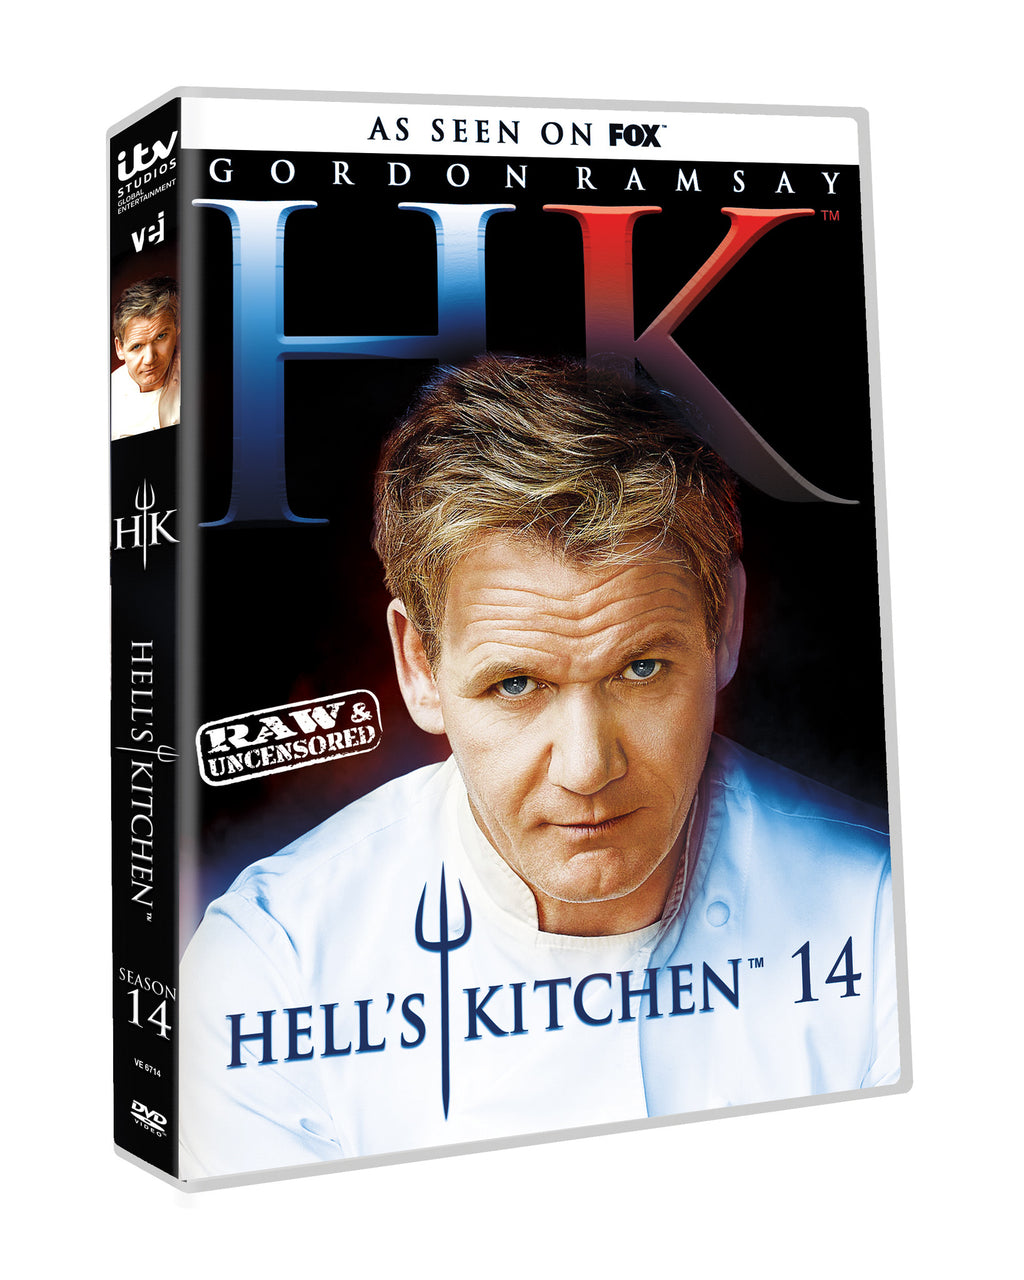 Hell's Kitchen Season 14 #6714